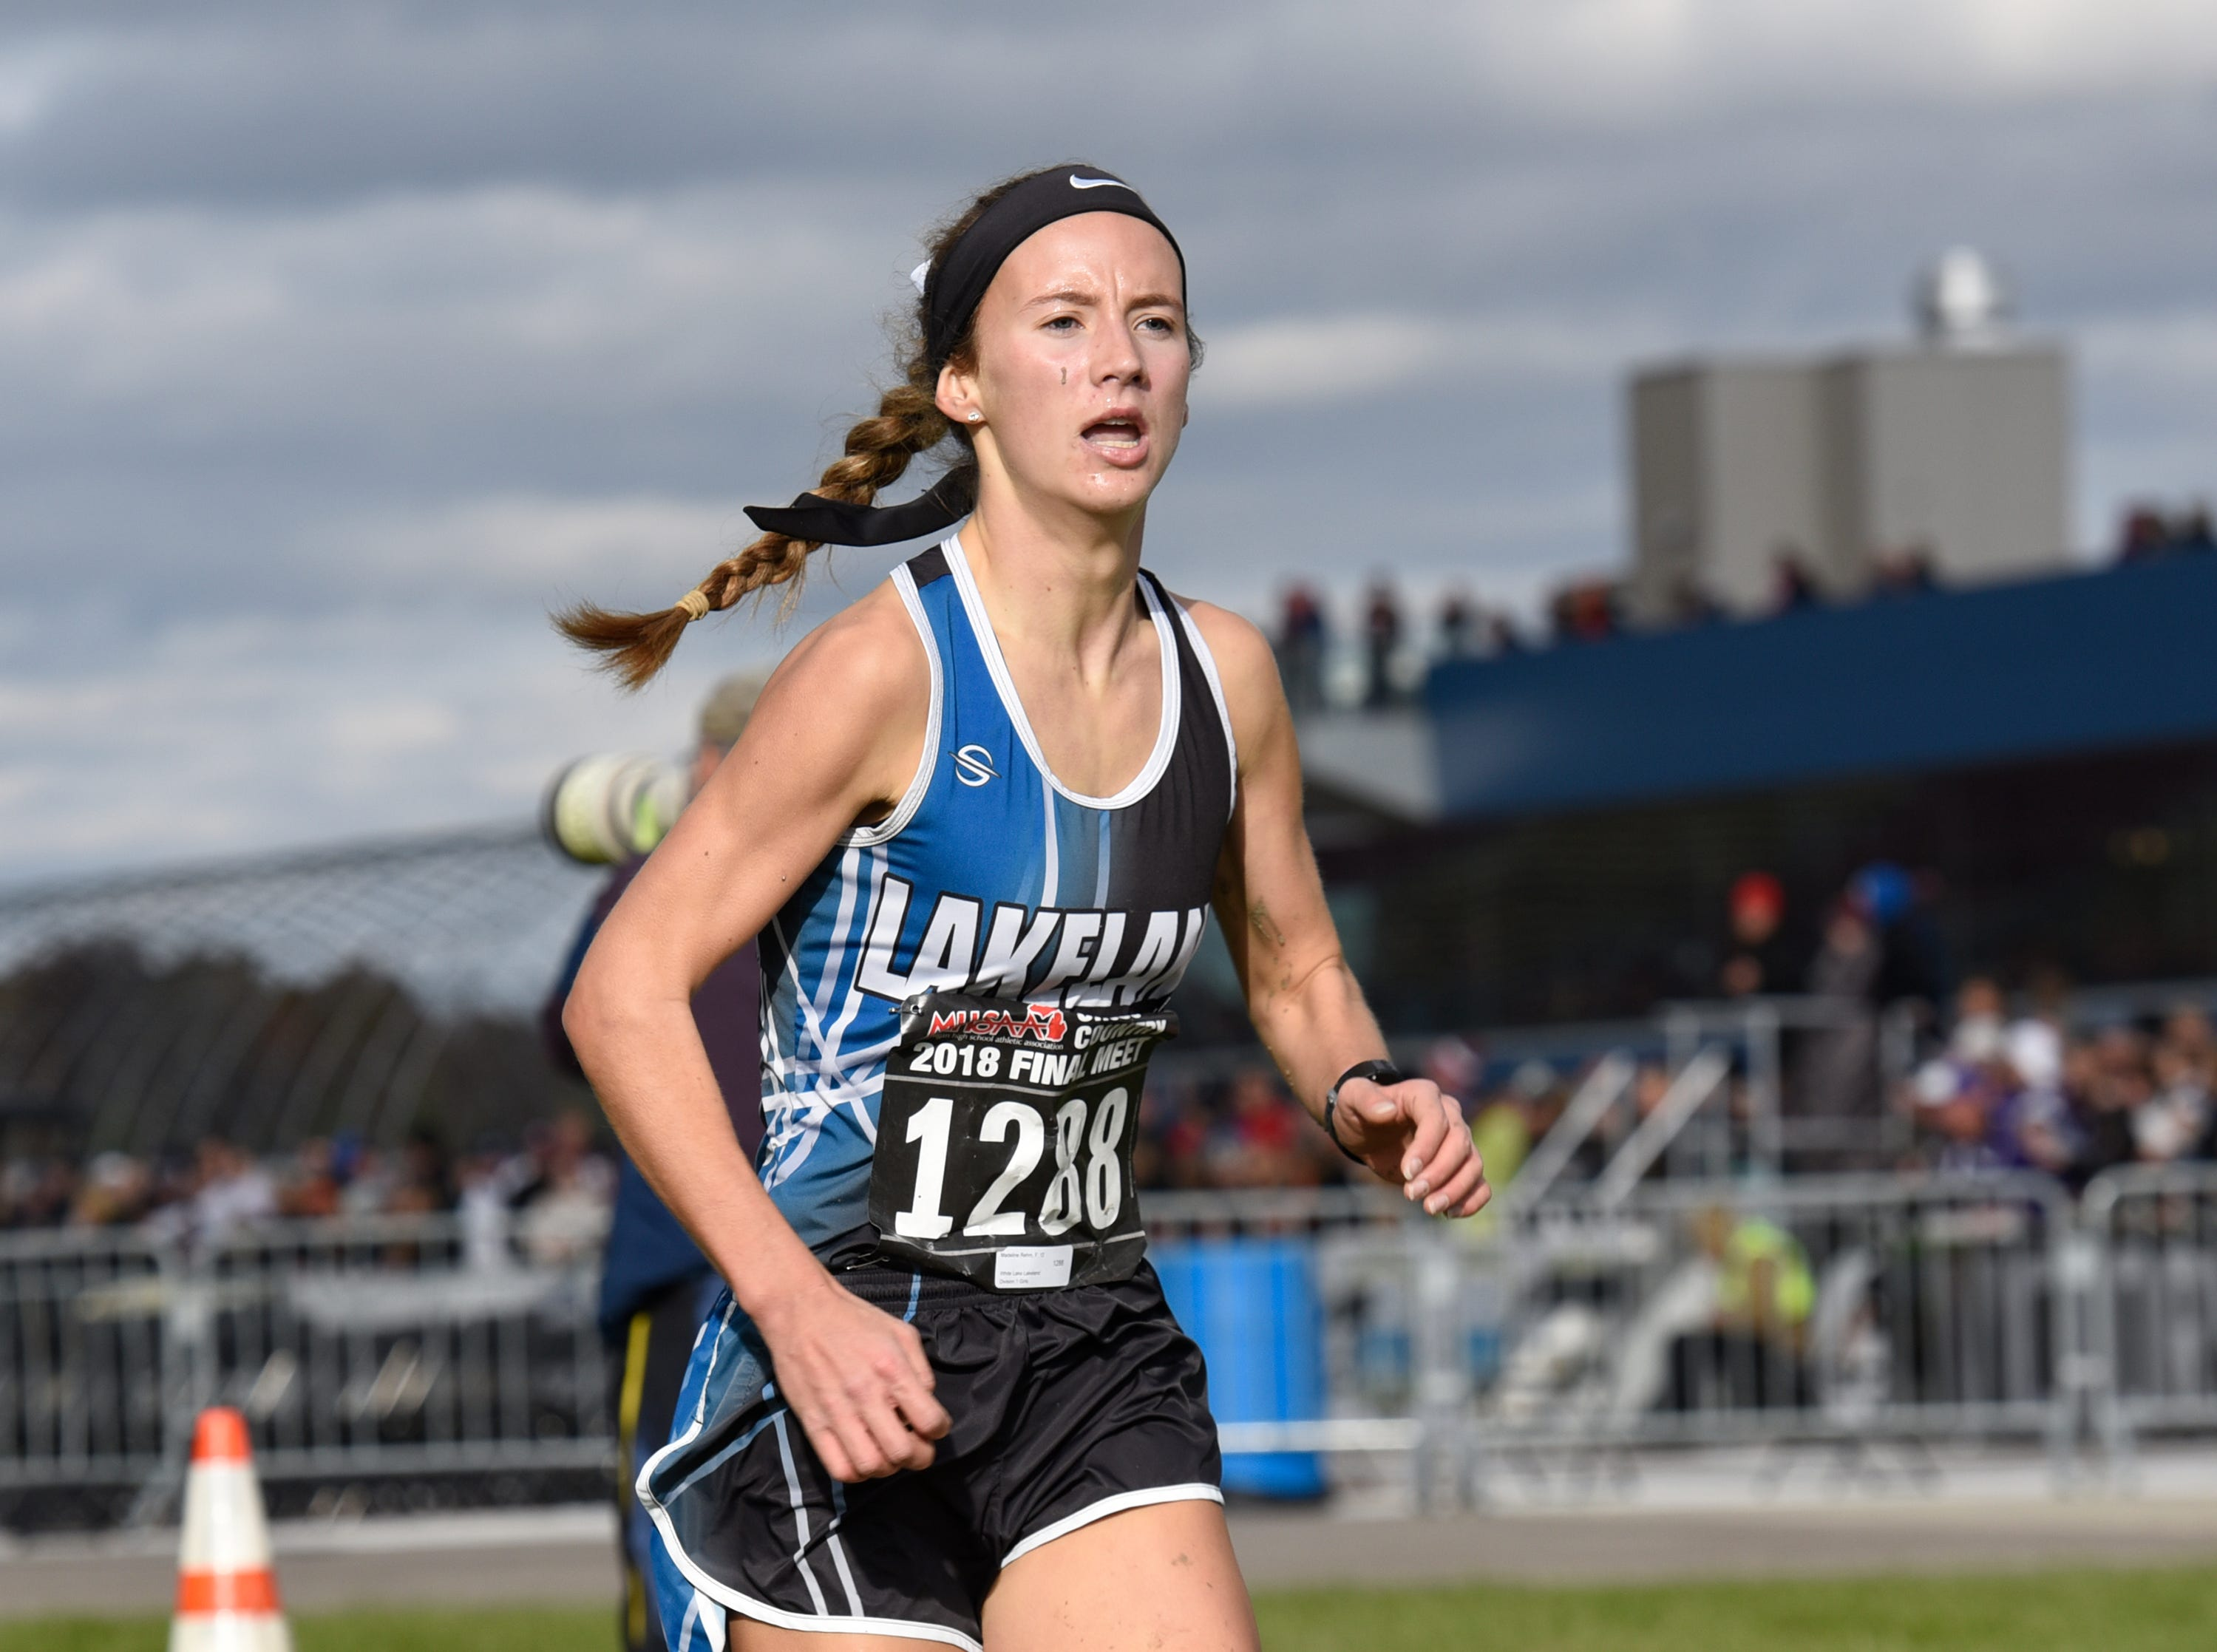 Lakeland's Madeline Rehm during the Division 1 2018 cross country finals at Michigan International Speedway.